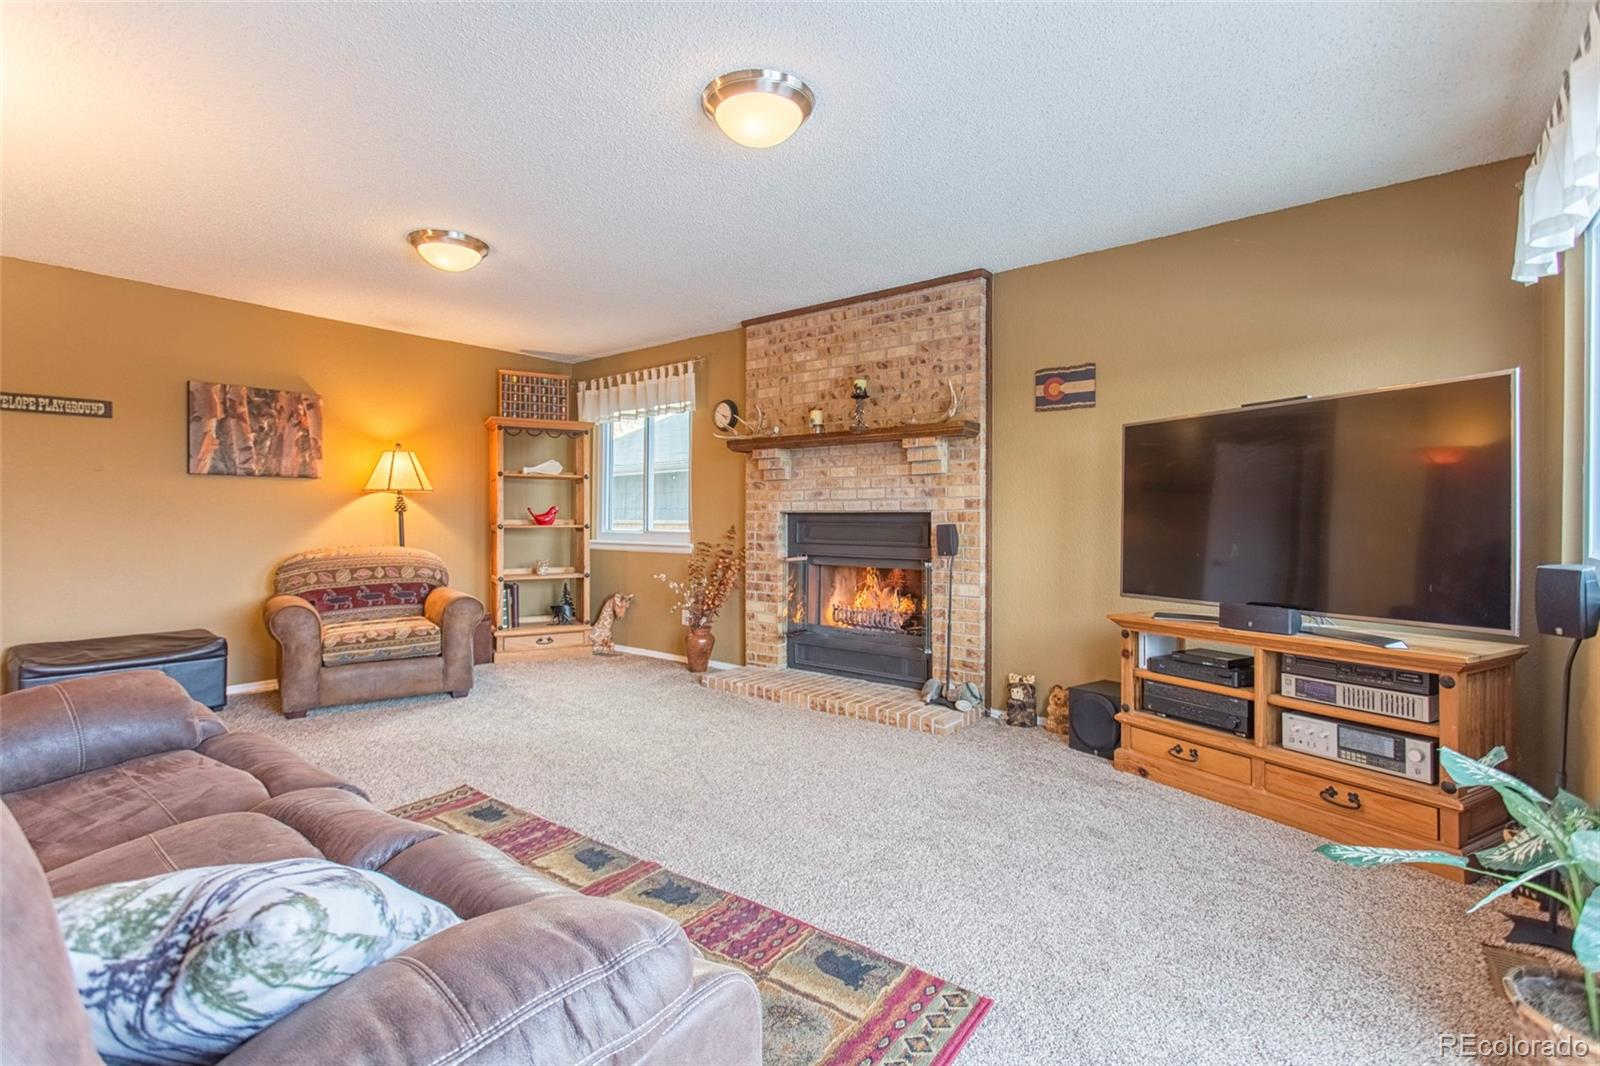 MLS# 8627962 - 10 - 431 Snowy Owl Place, Highlands Ranch, CO 80126